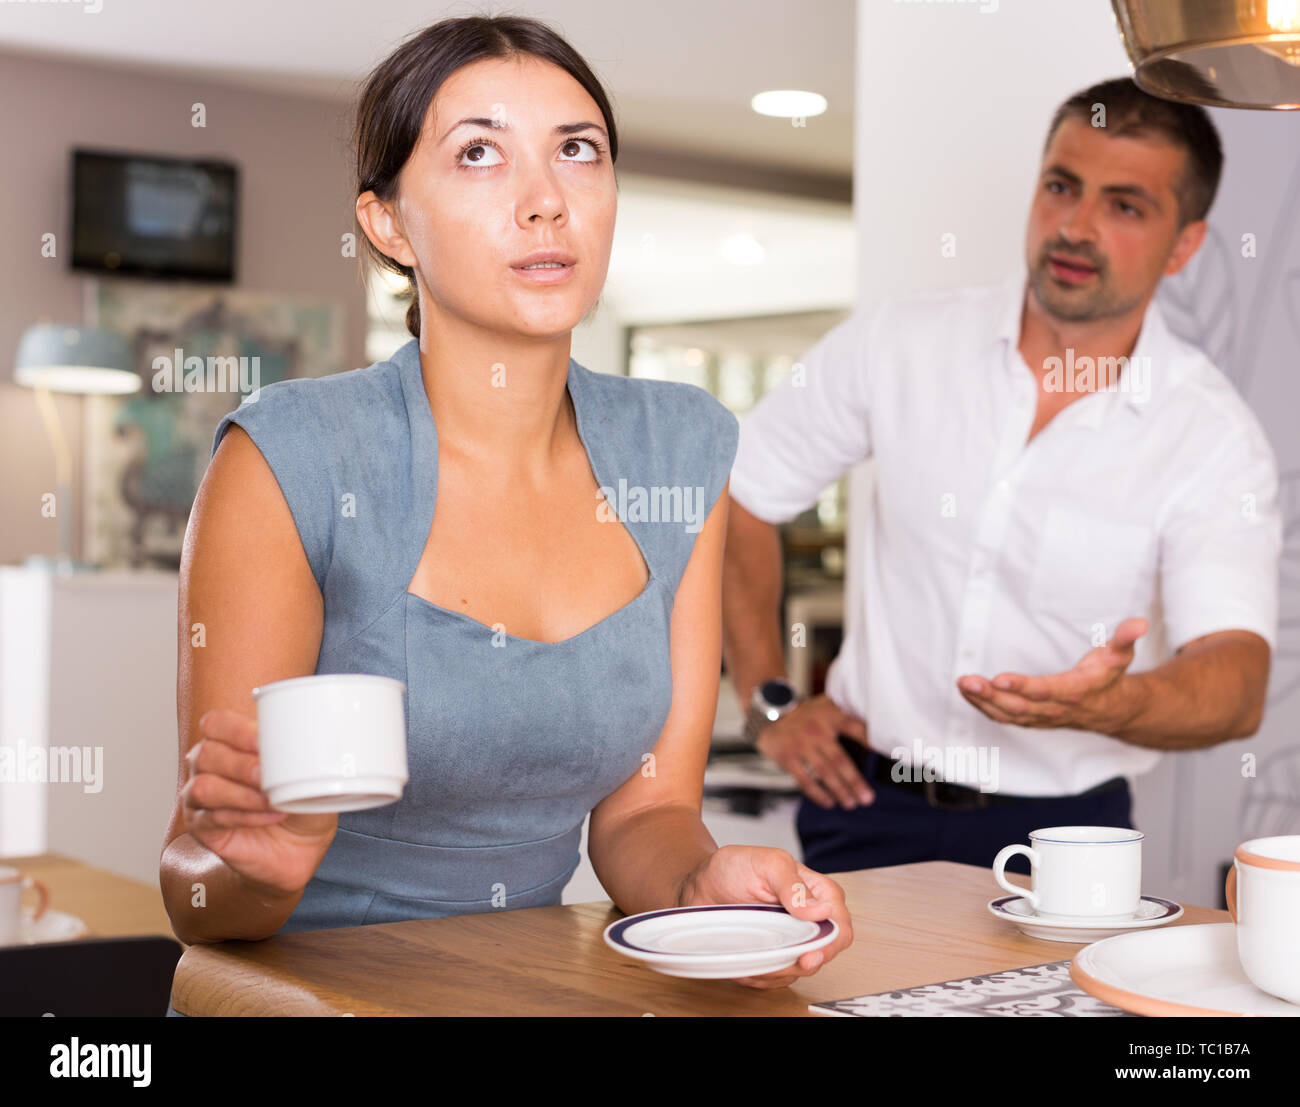 Upset young woman drinking tea at home table with disgruntled man behind her - Stock Image